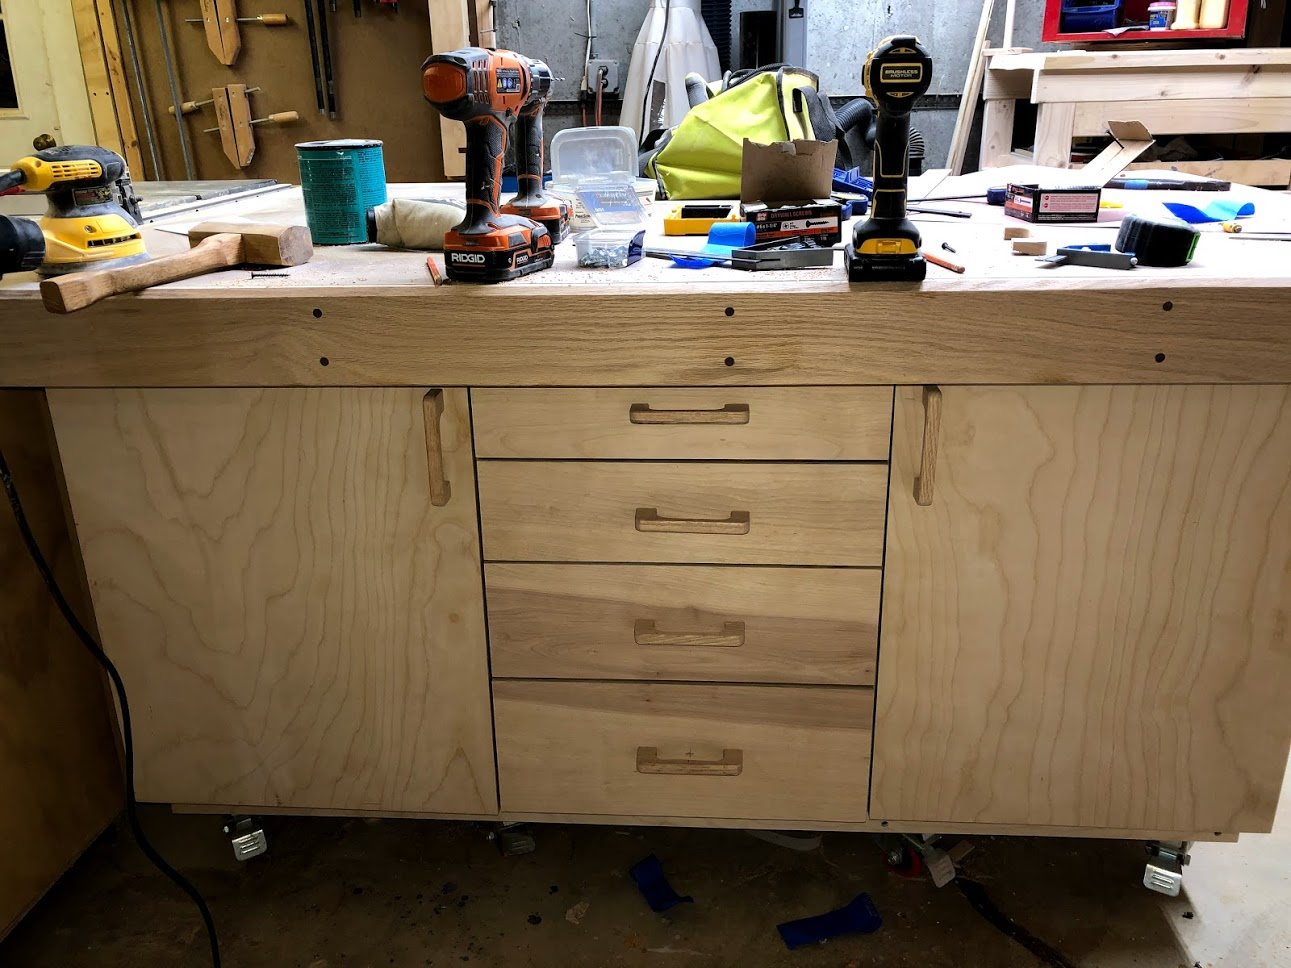 With all the drawers done I turned my attention to installing the pulls on the cabinet drawers.